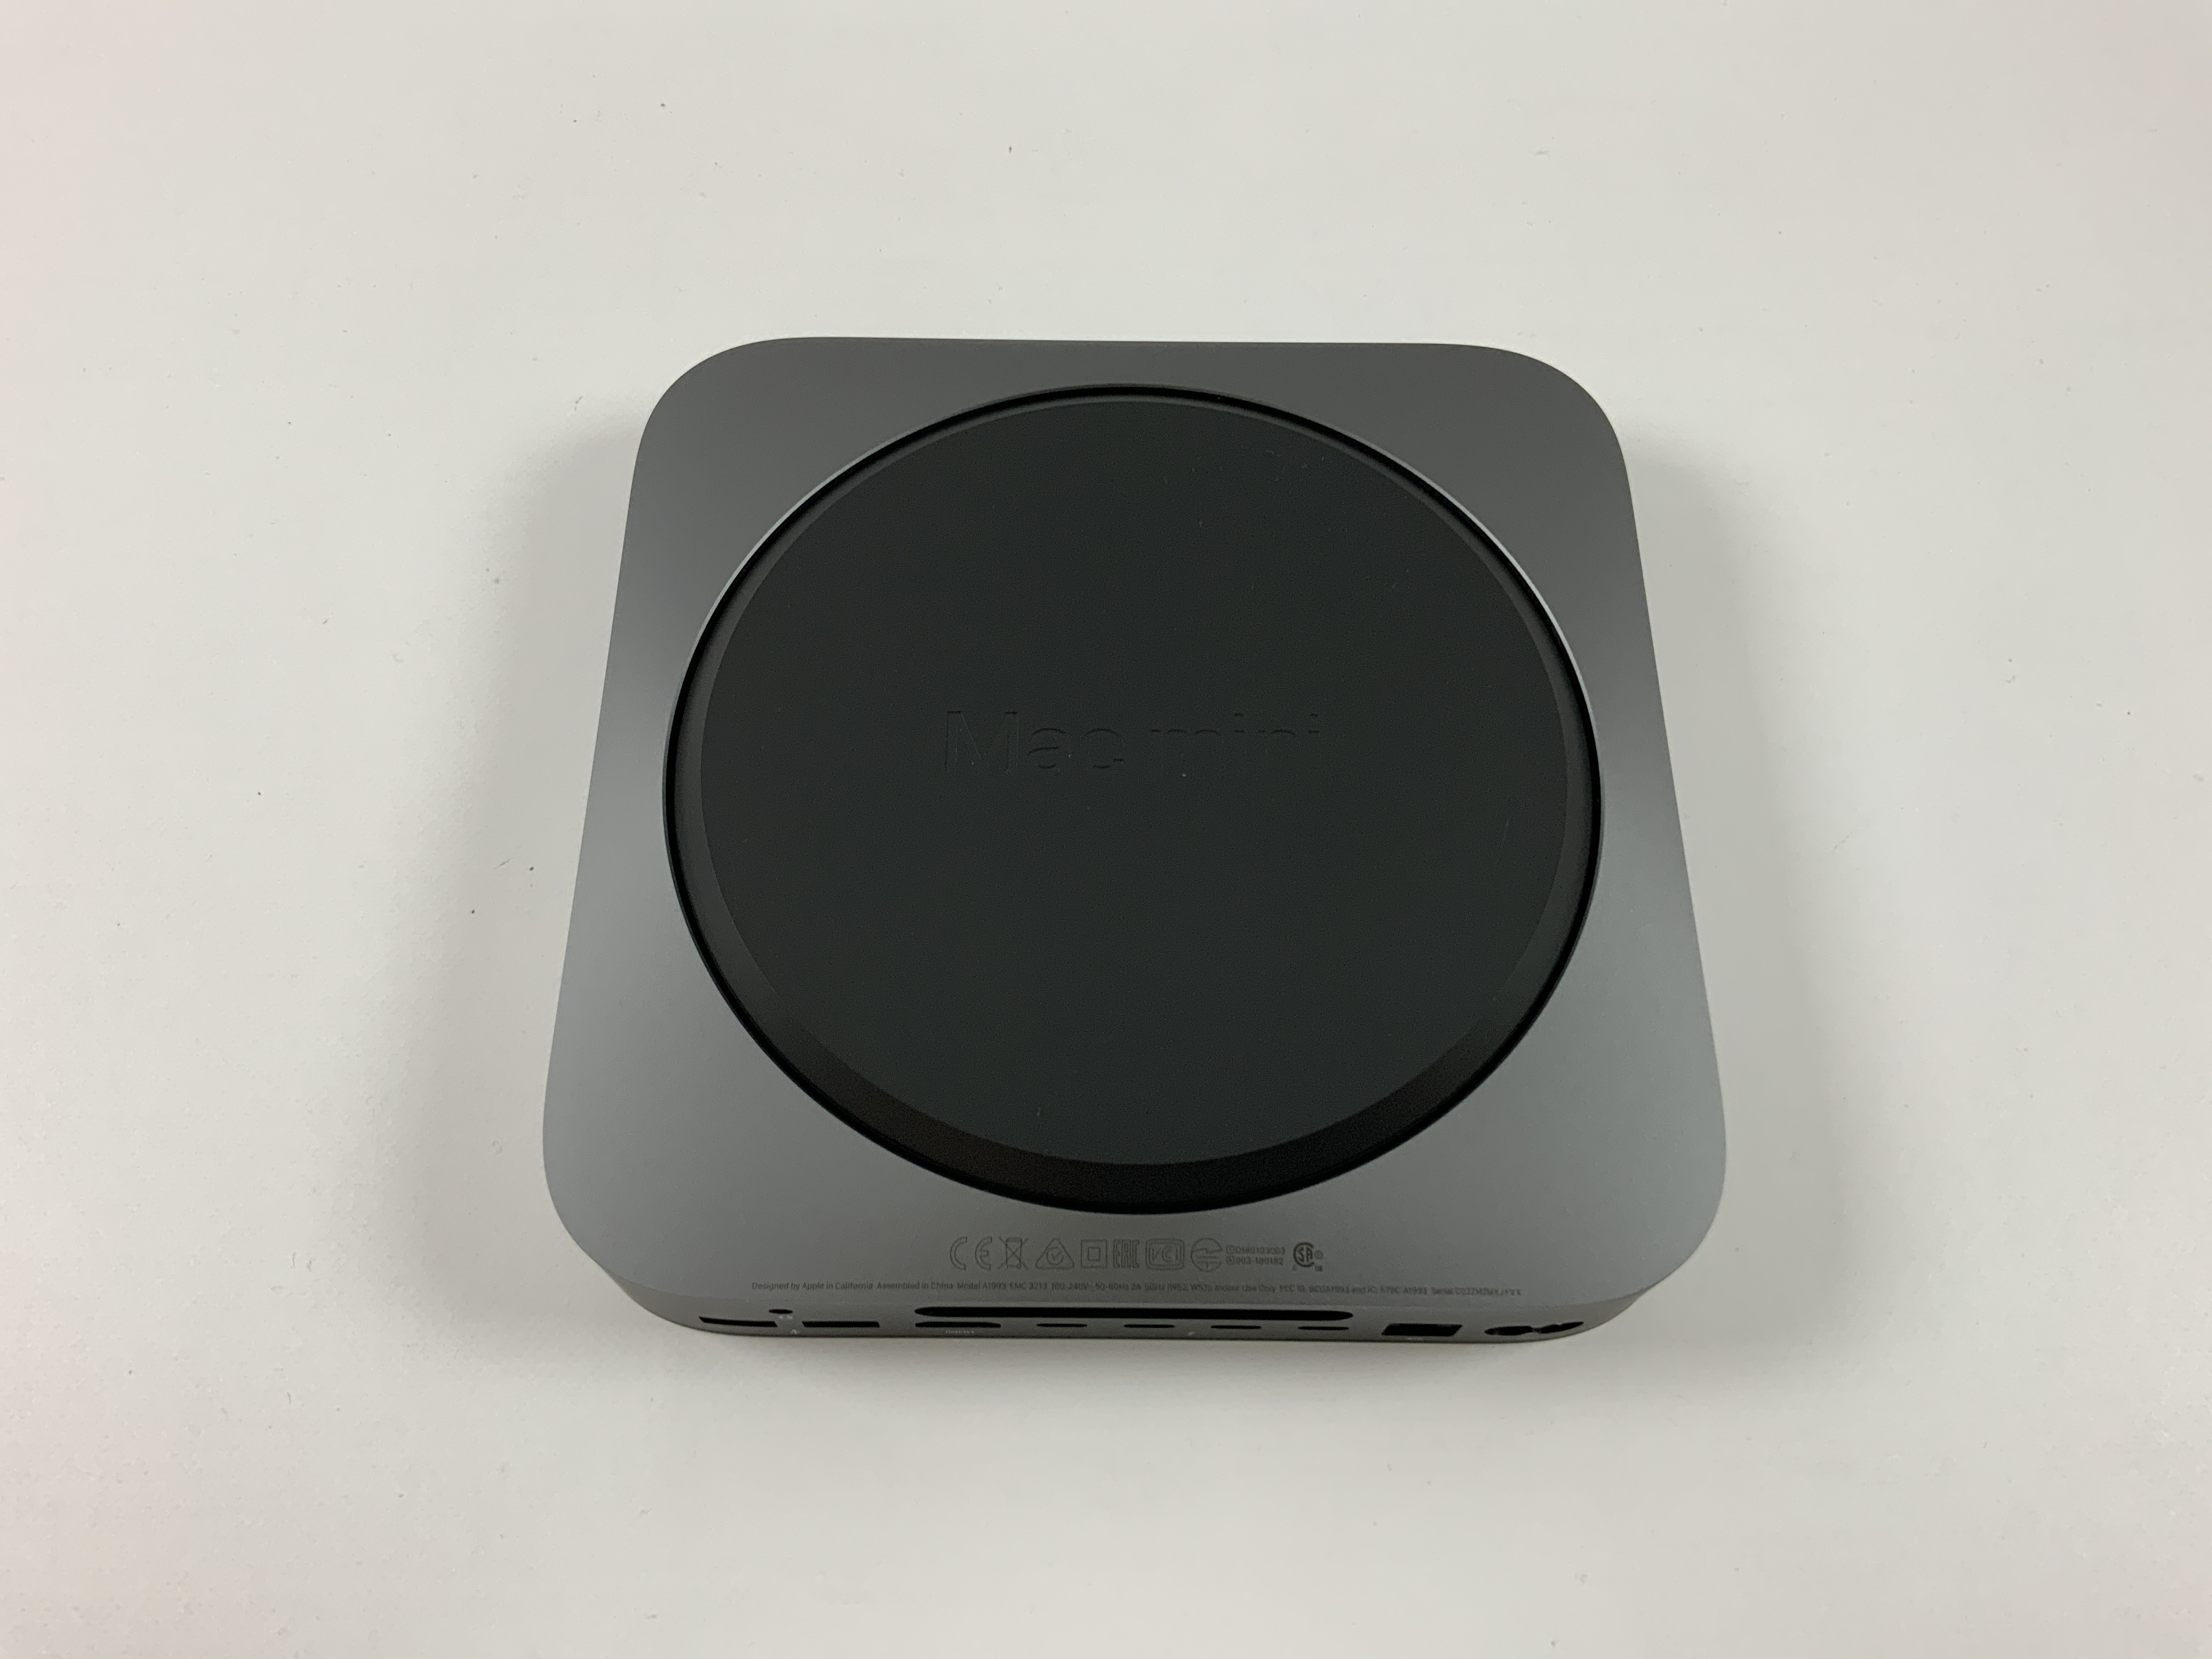 Mac Mini Late 2018 (Intel 6-Core i5 3.0 GHz 8 GB RAM 256 GB SSD), Intel 6-Core i5 3.0 GHz, 8 GB RAM, 256 GB SSD, image 2